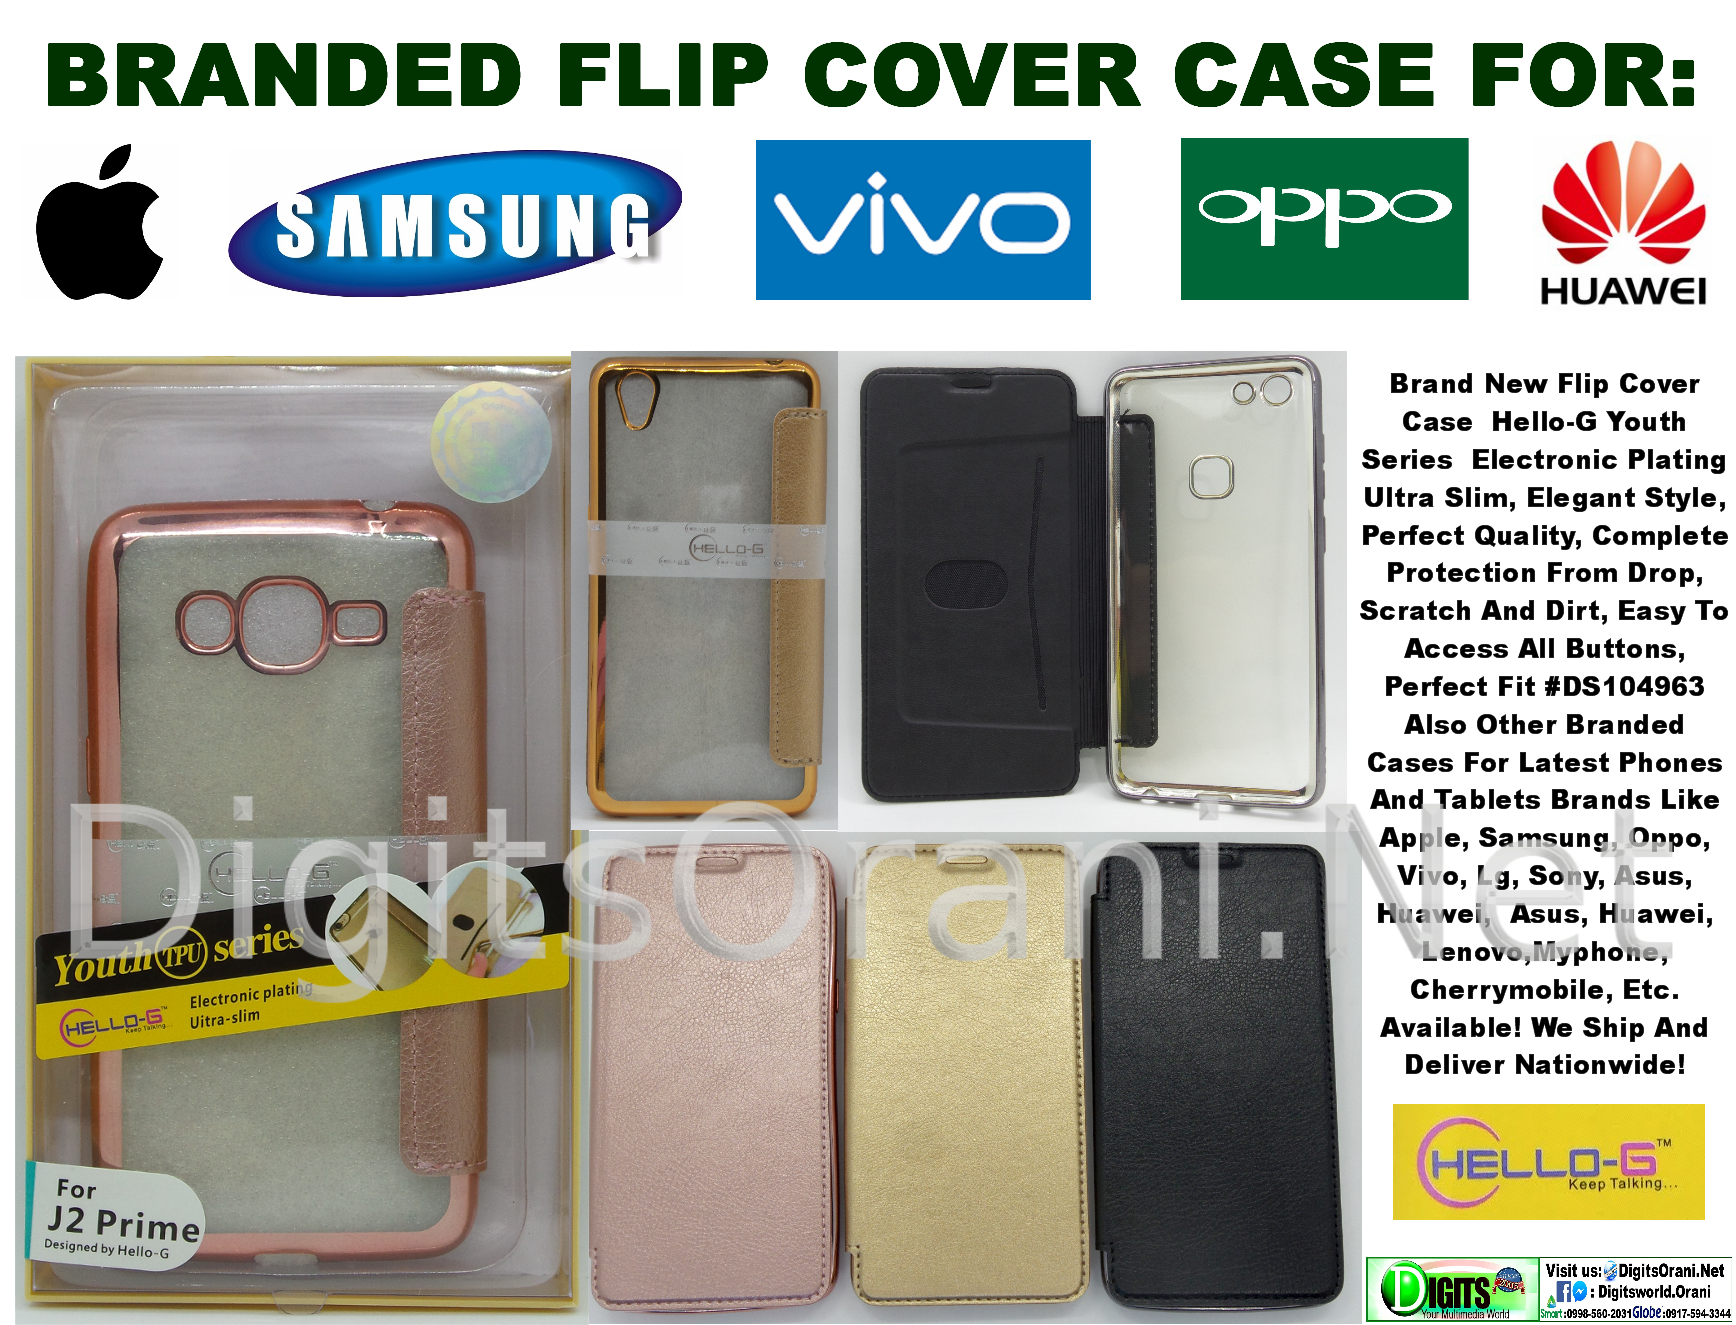 Flip Cover Case For Oppo A83 Alibaba Nice Series Electronic Plating, Ultra  Slim #Ds4804567910675